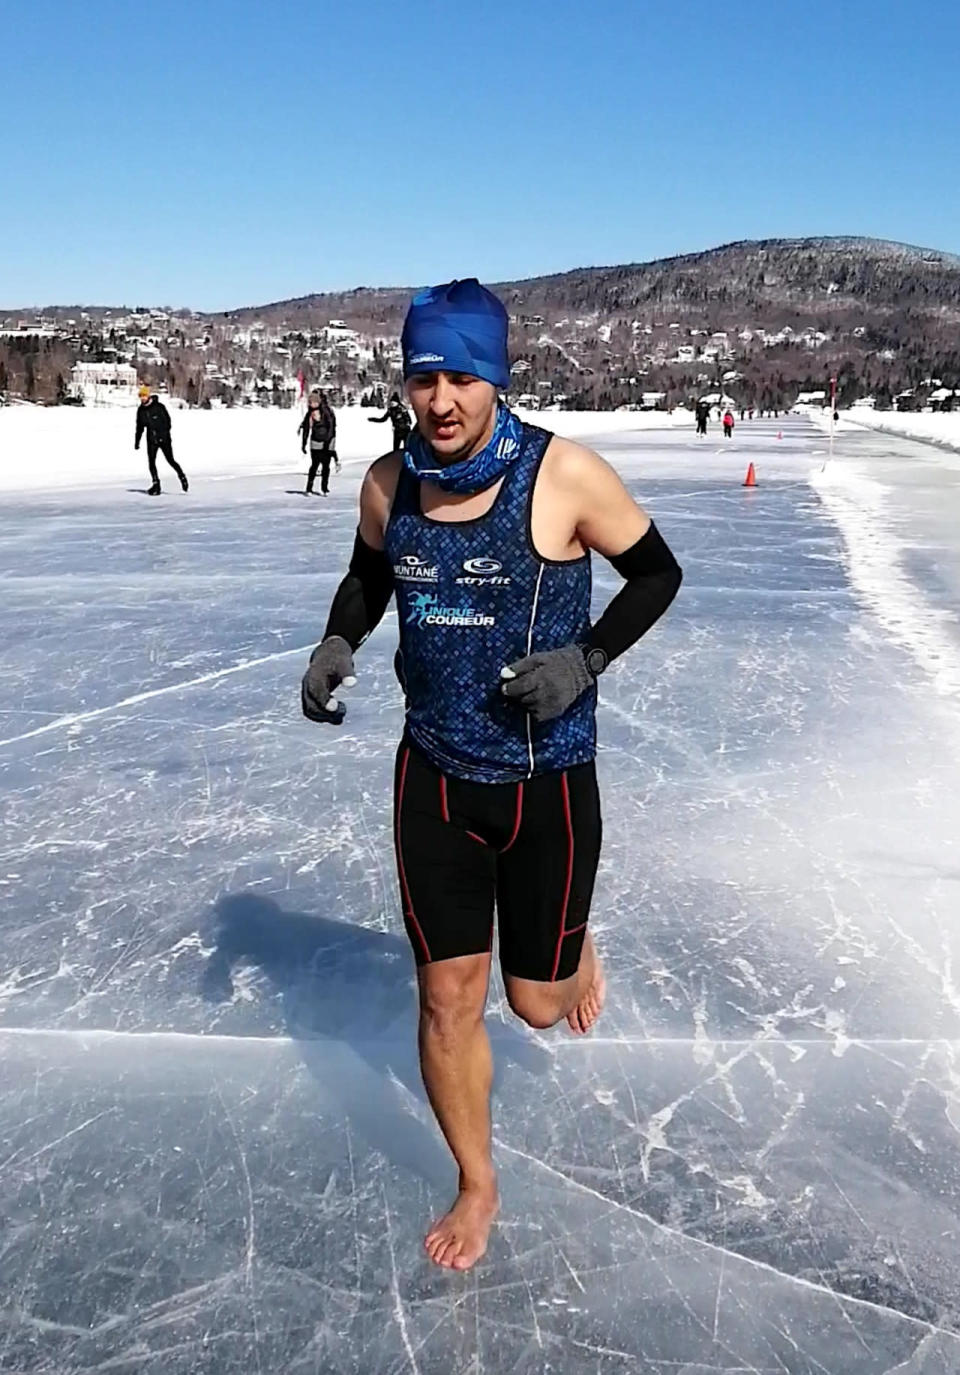 Barefoot sprinter races on frozen lake, sets unofficial world record